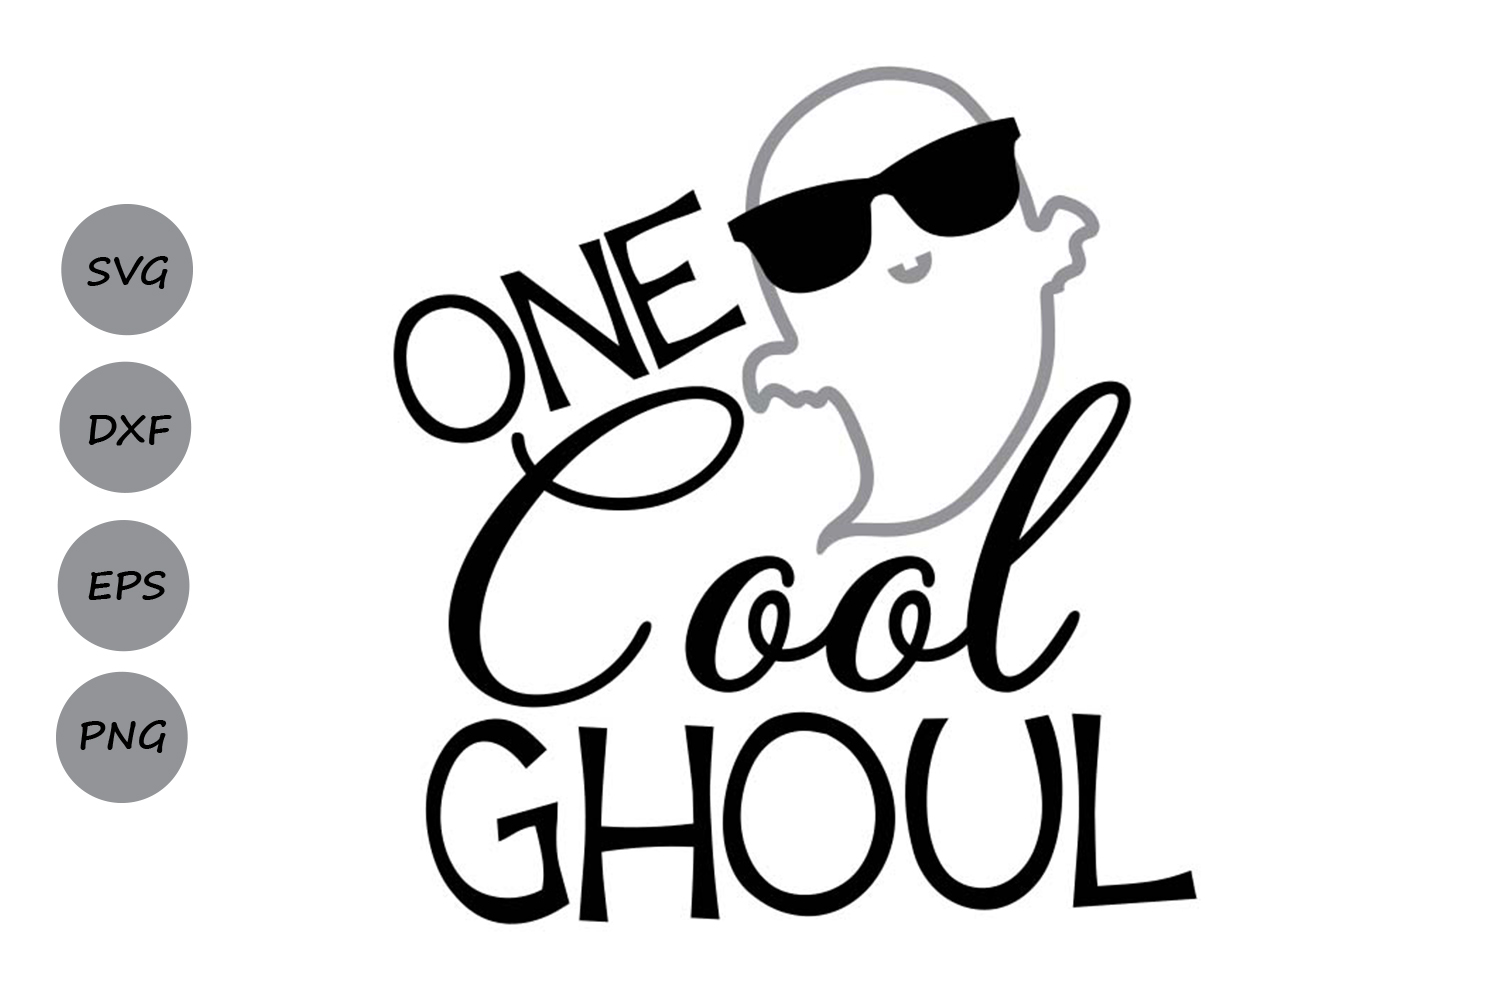 Download Free One Cool Ghoul Svg Graphic By Cosmosfineart Creative Fabrica for Cricut Explore, Silhouette and other cutting machines.